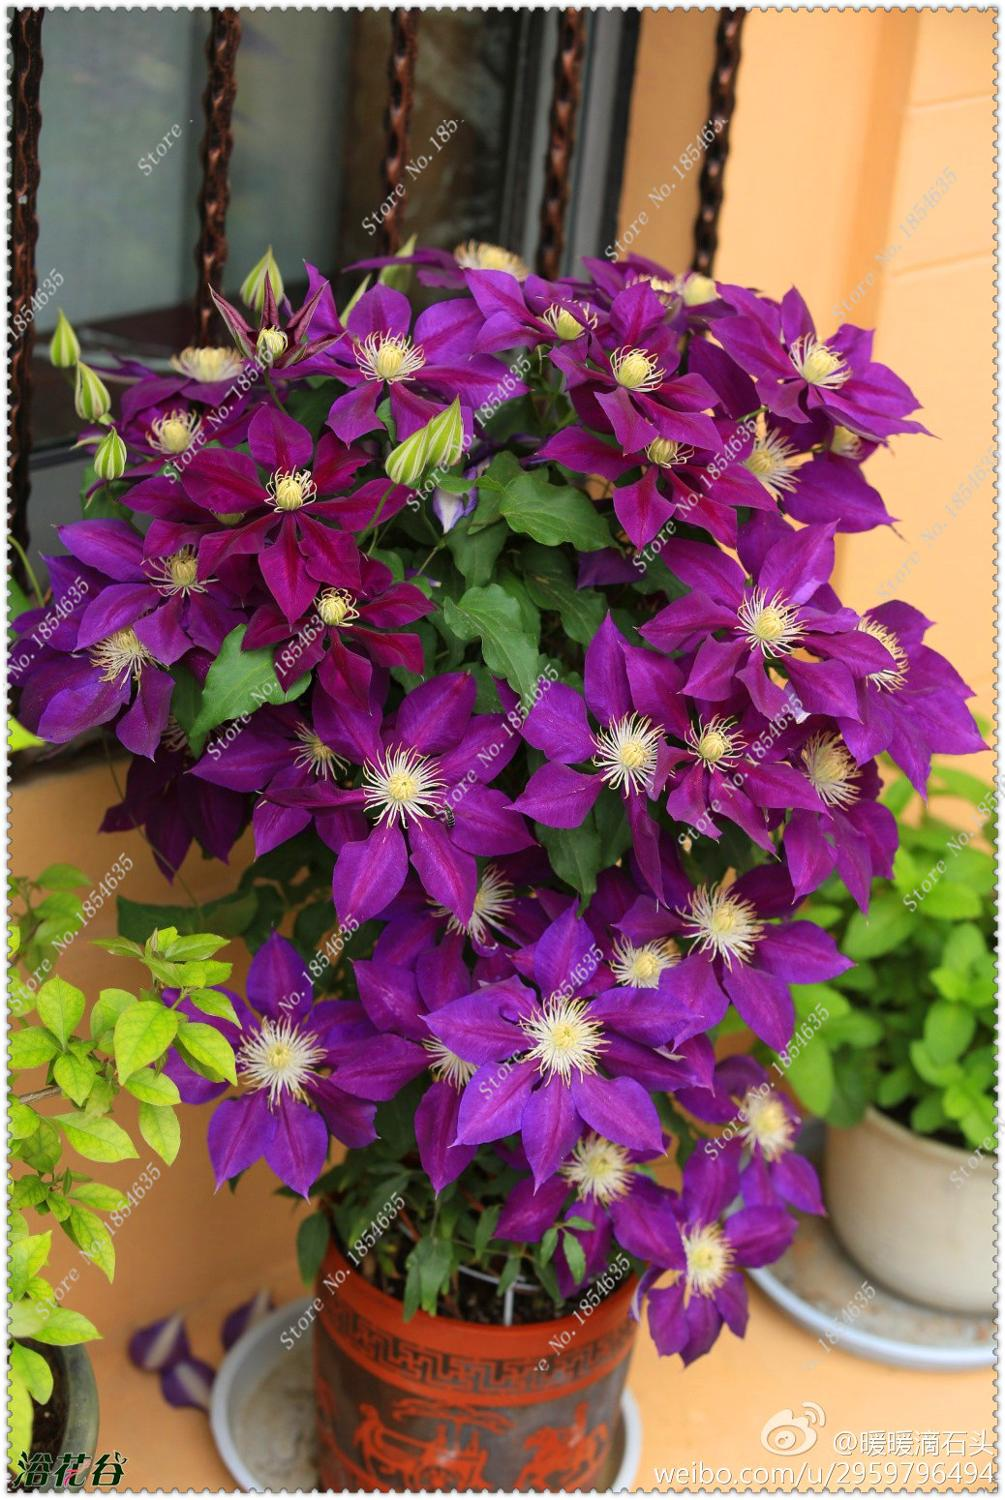 Clematis Seeds Potted Balcony Clematis,bonsai flower seeds for home ga